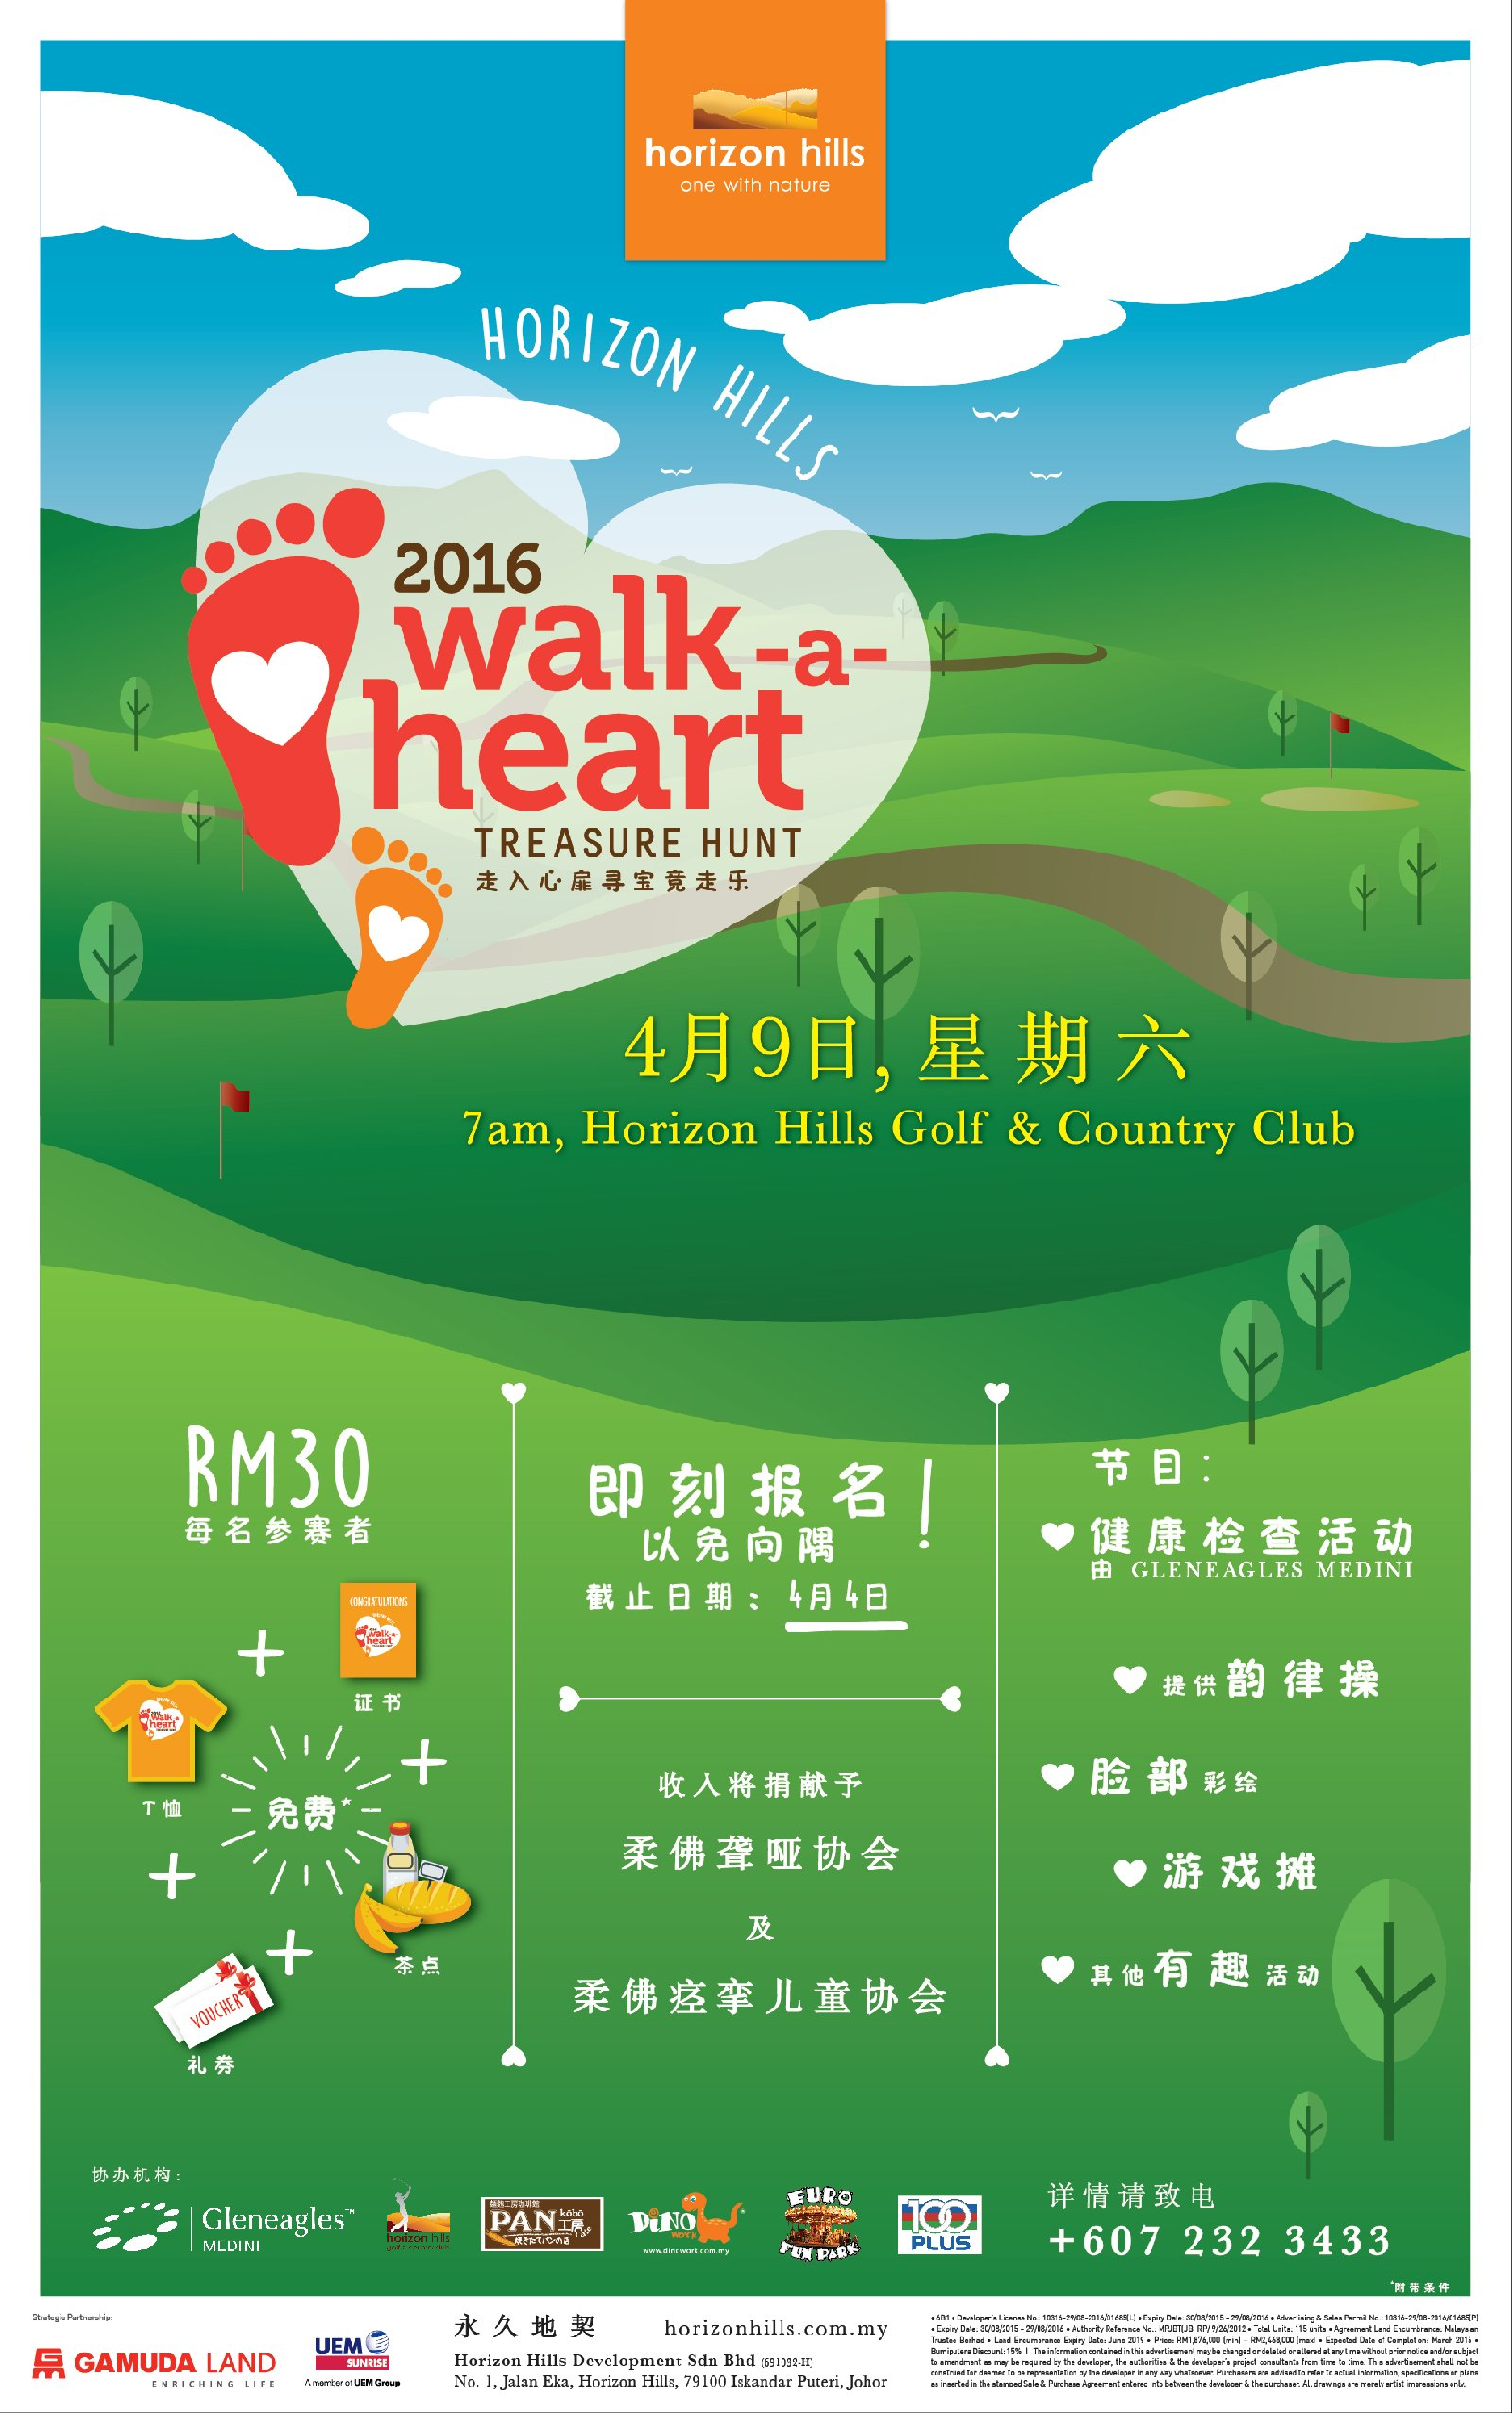 Walk-a-Heart Treasure Hunt 2016